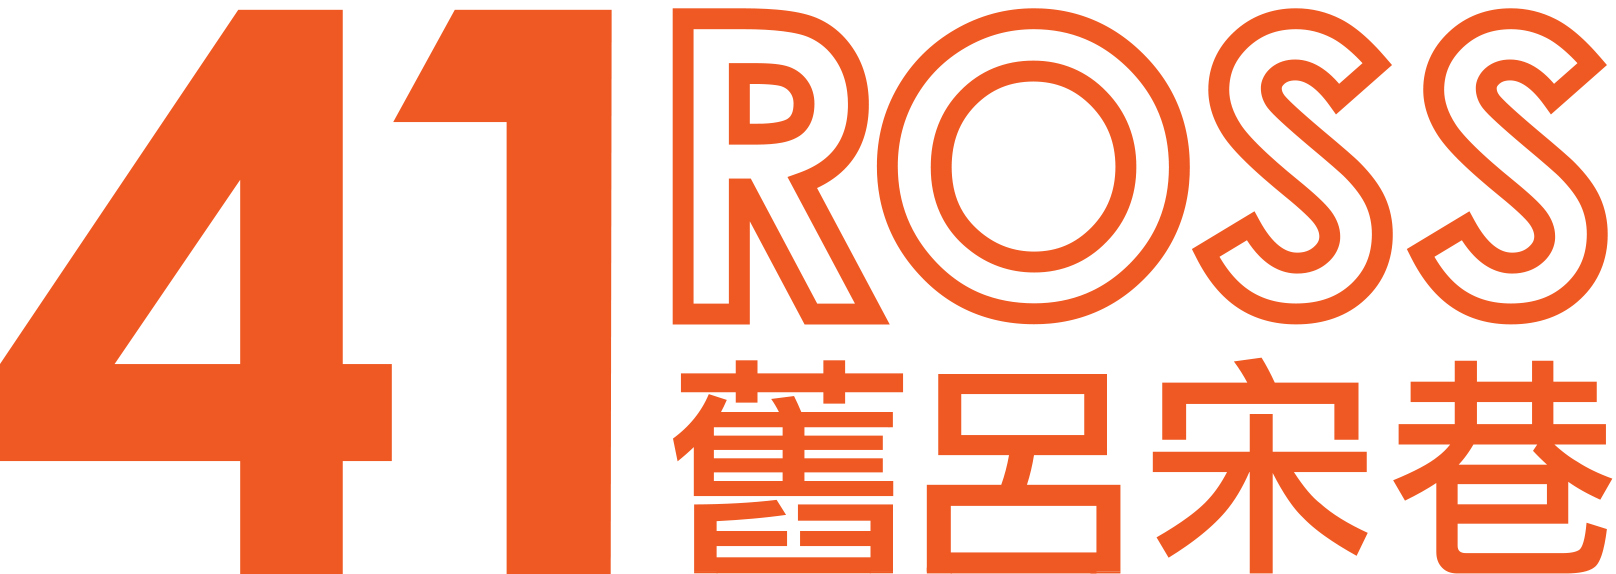 Li was the project manager and graphic designer of 41 Ross.